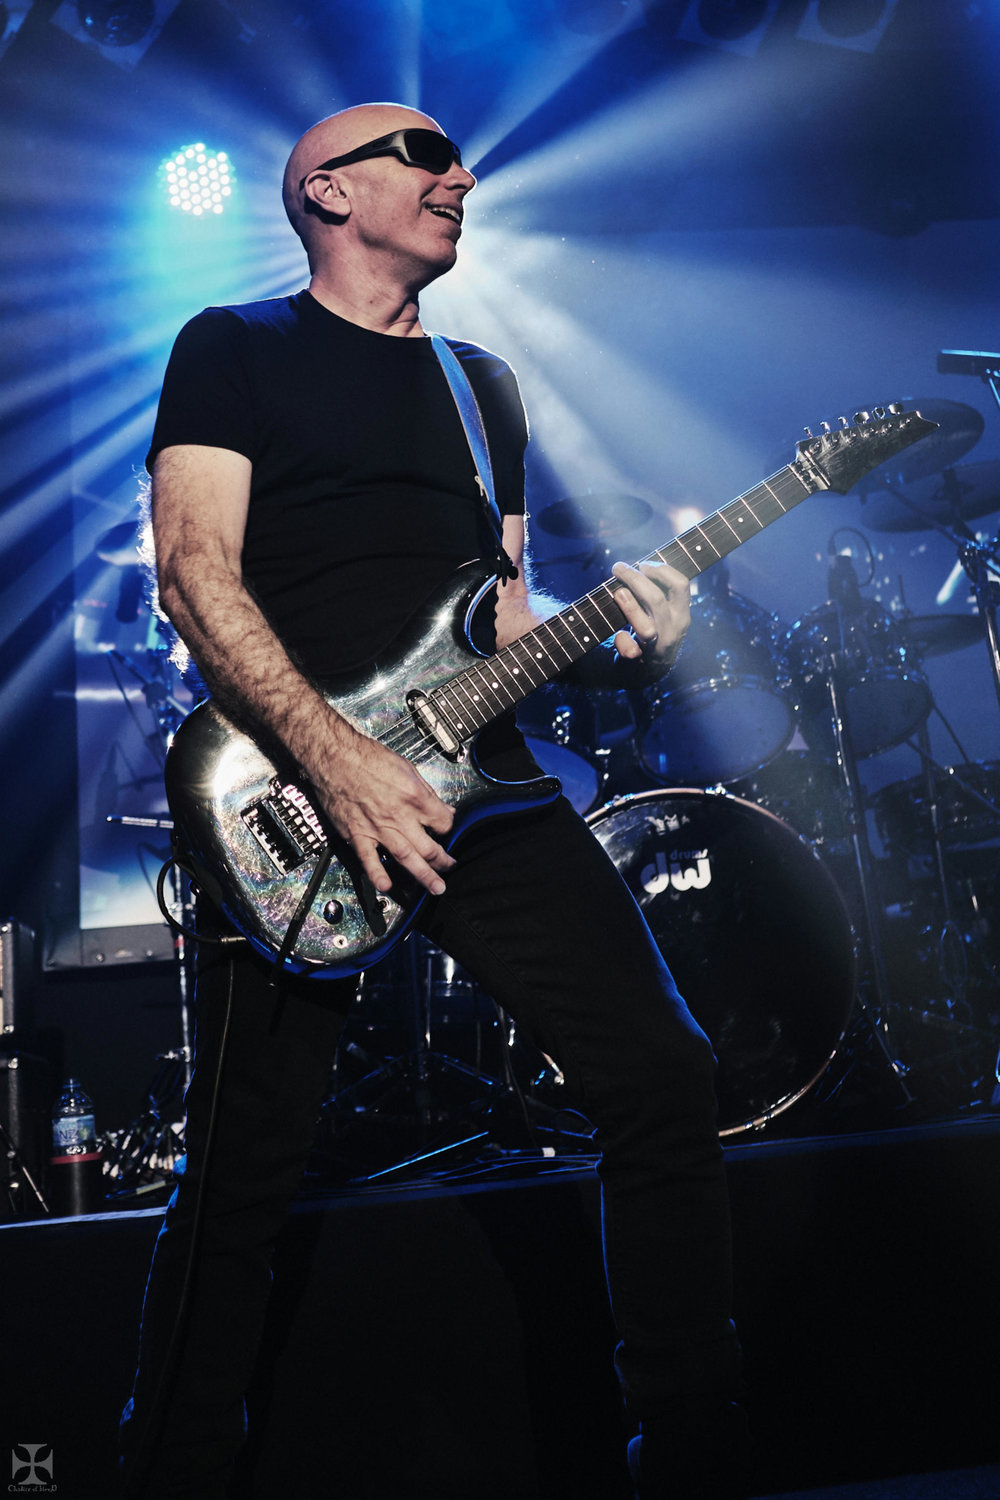 2018.12.04 Joe Satriani - DSC21261_branded.jpg